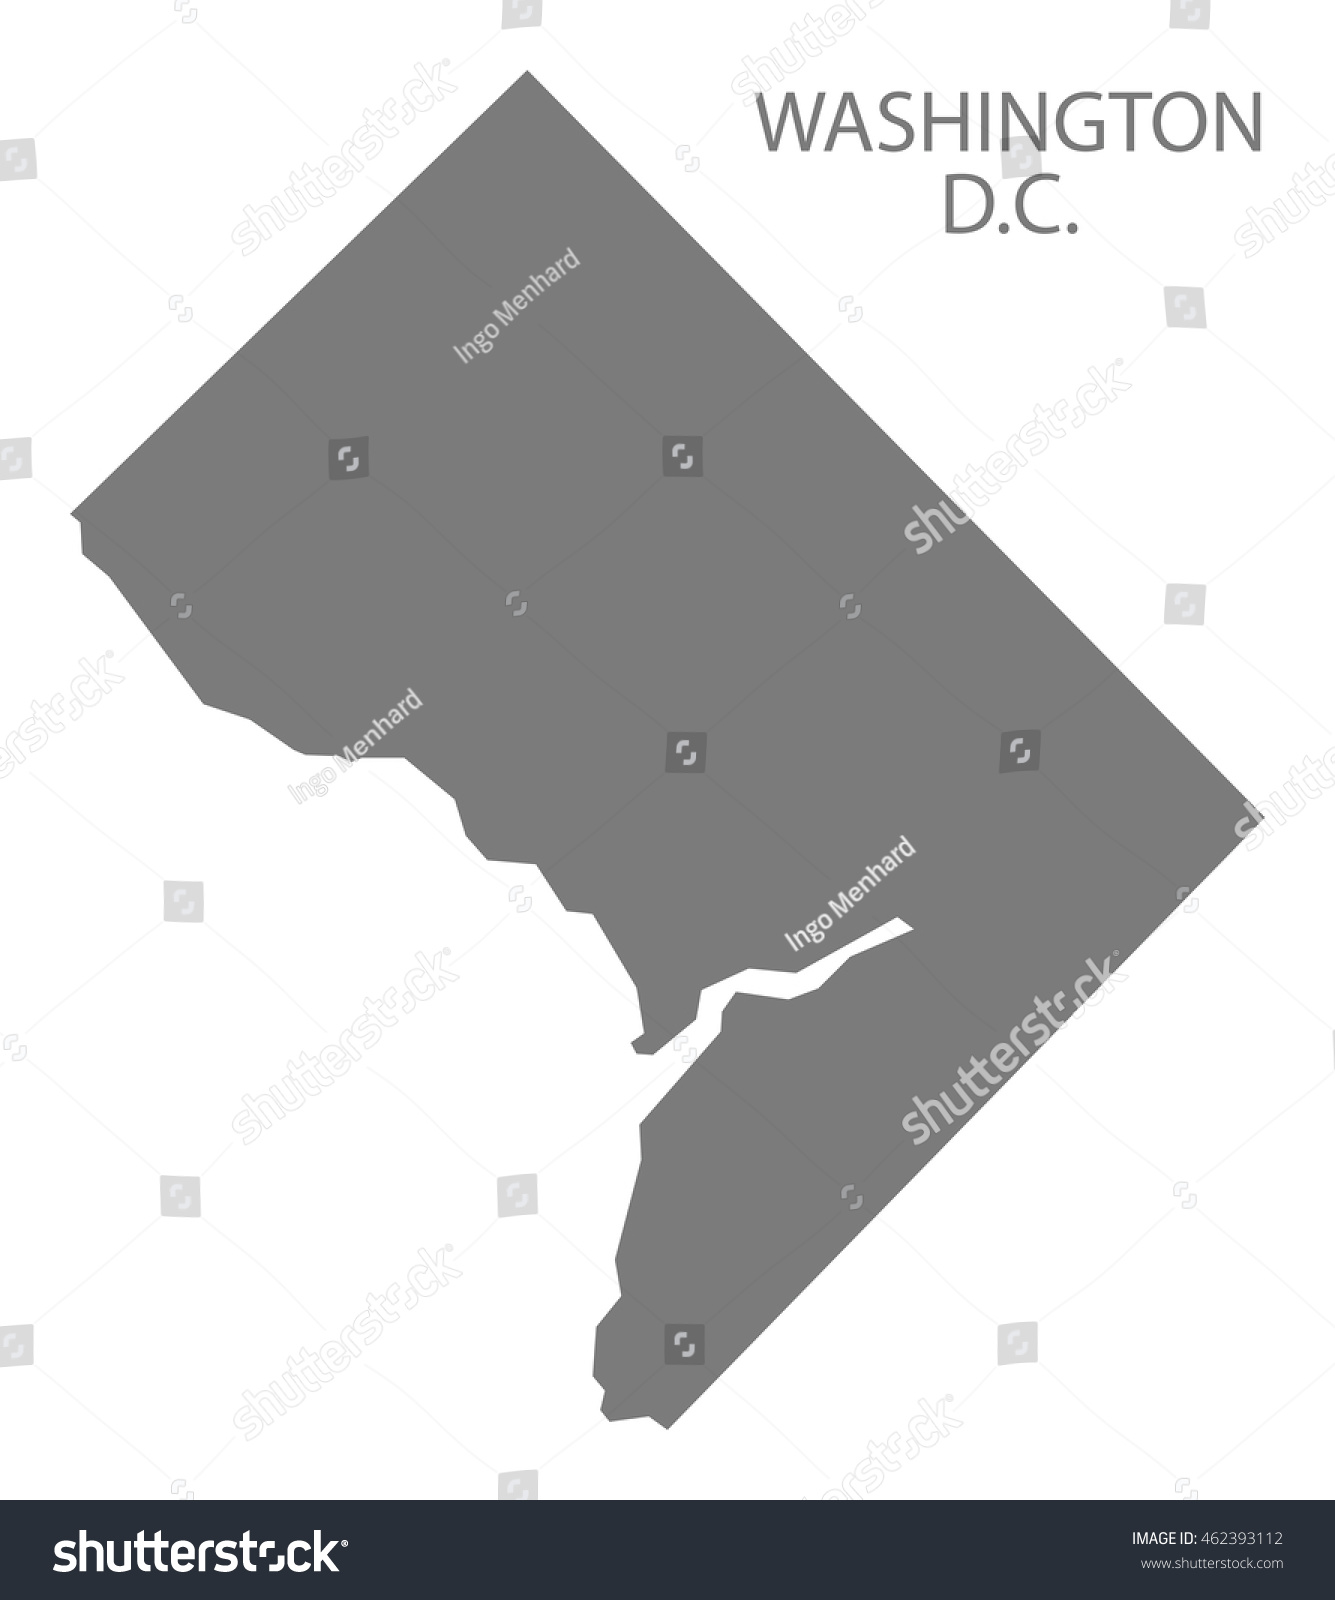 Washington Dc Us Map Map Of Usa Washington Dc Map Usa States - Washington dc on map of us